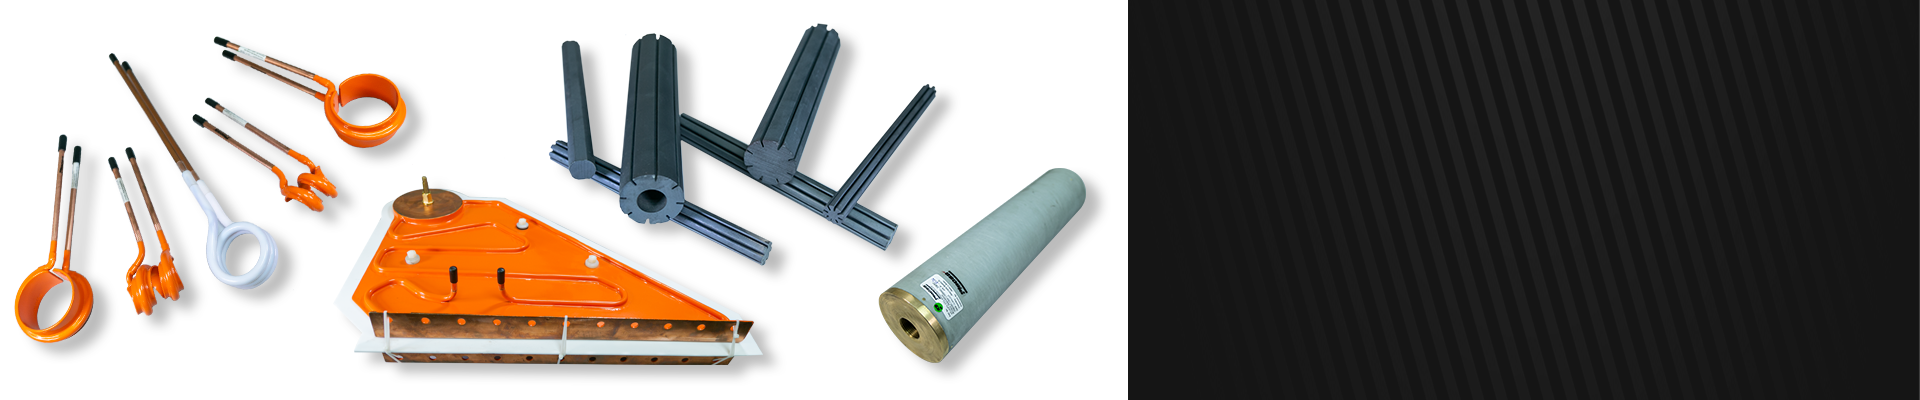 Piecsa, Consumables for welding pipe by induction.